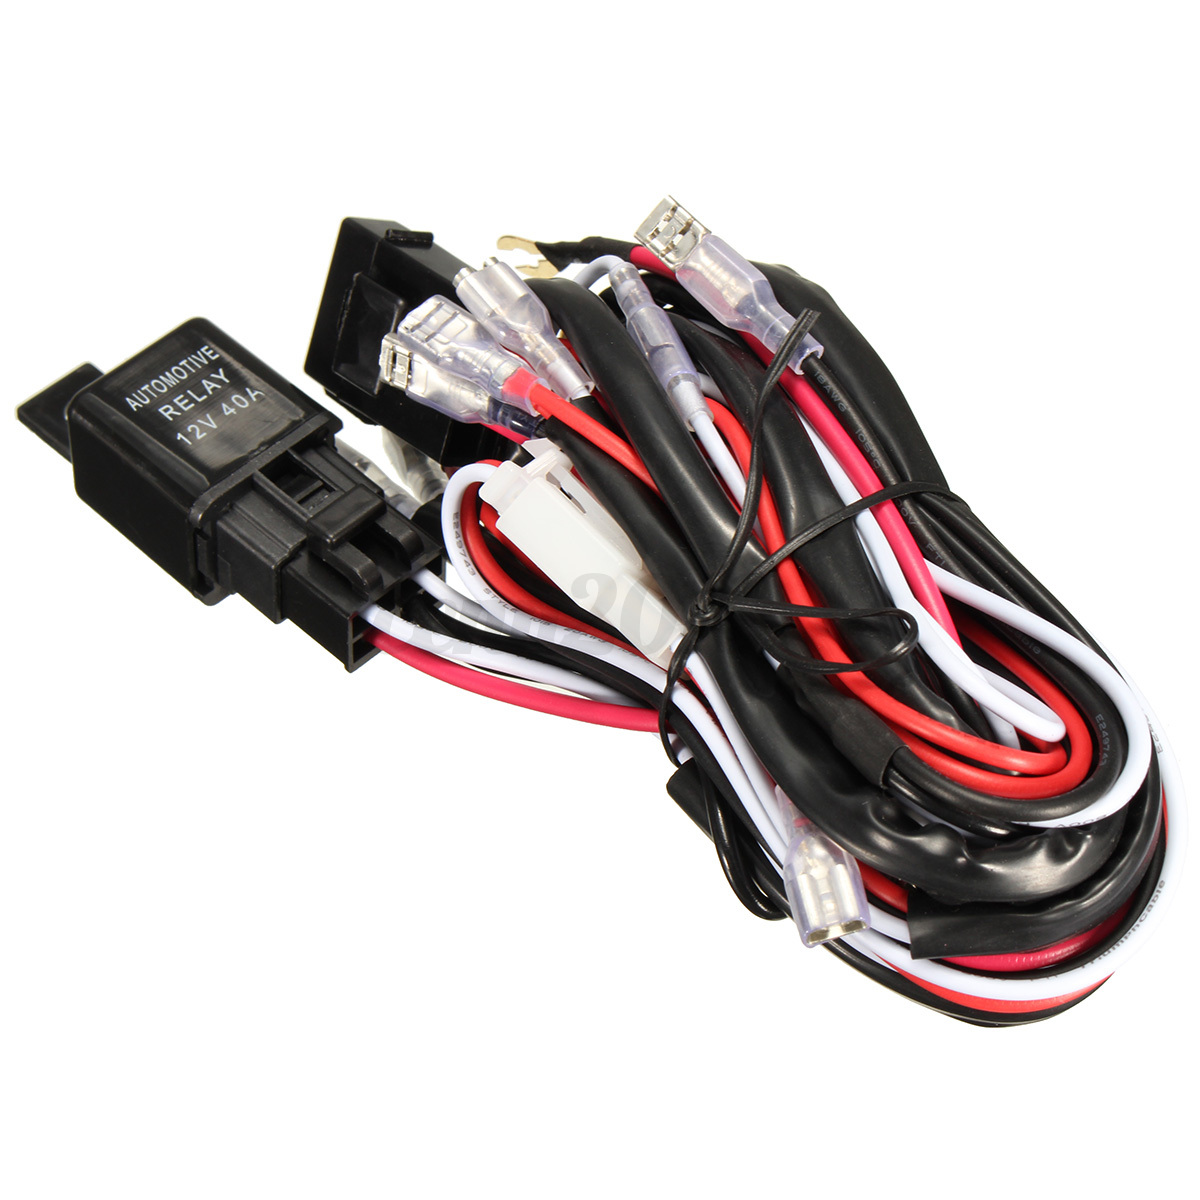 5 pin rocker switch wiring diagram images rocker switch led light bar wiring harness also rocker switch